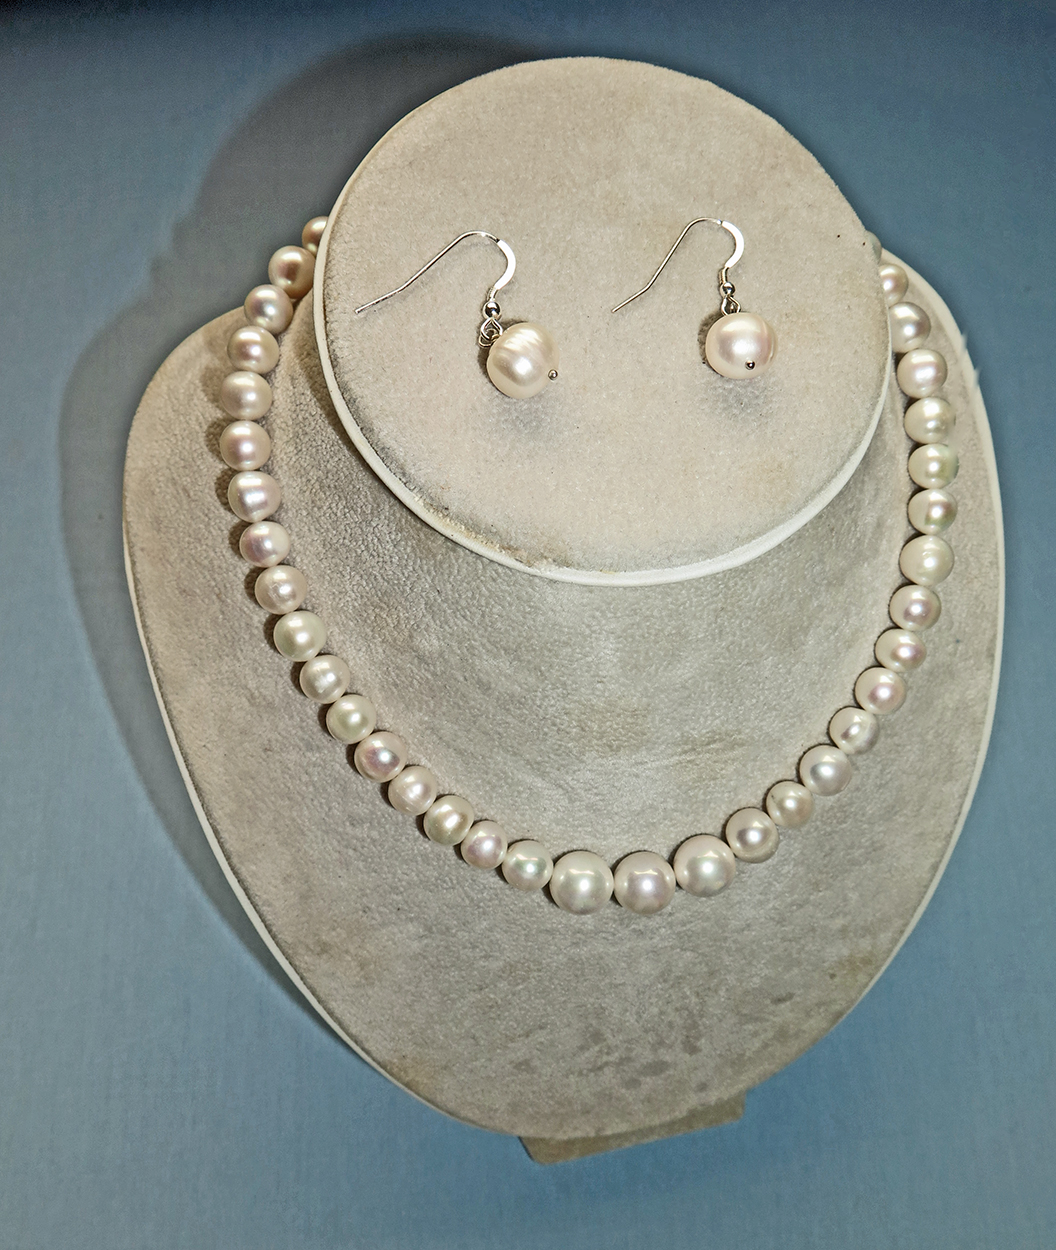 Cultured Pearl Necklace with Earrings - C Grade